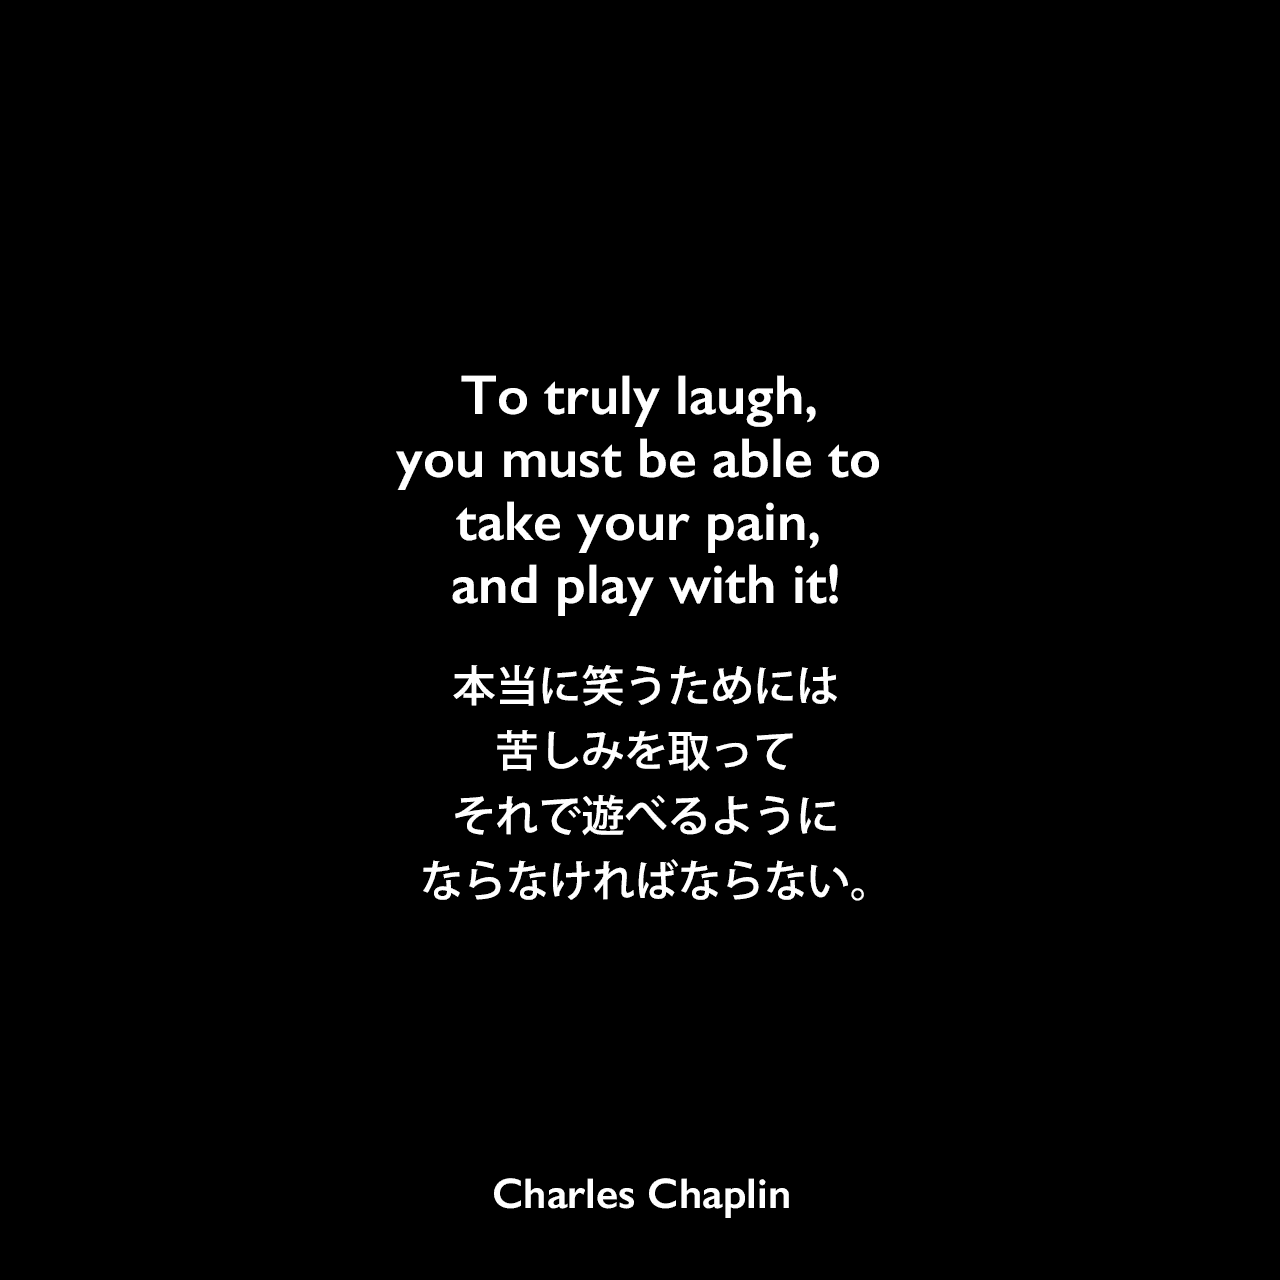 To truly laugh, you must be able to take your pain, and play with it!本当に笑うためには、苦しみを取って、それで遊べるようにならなければならない。Charles Chaplin